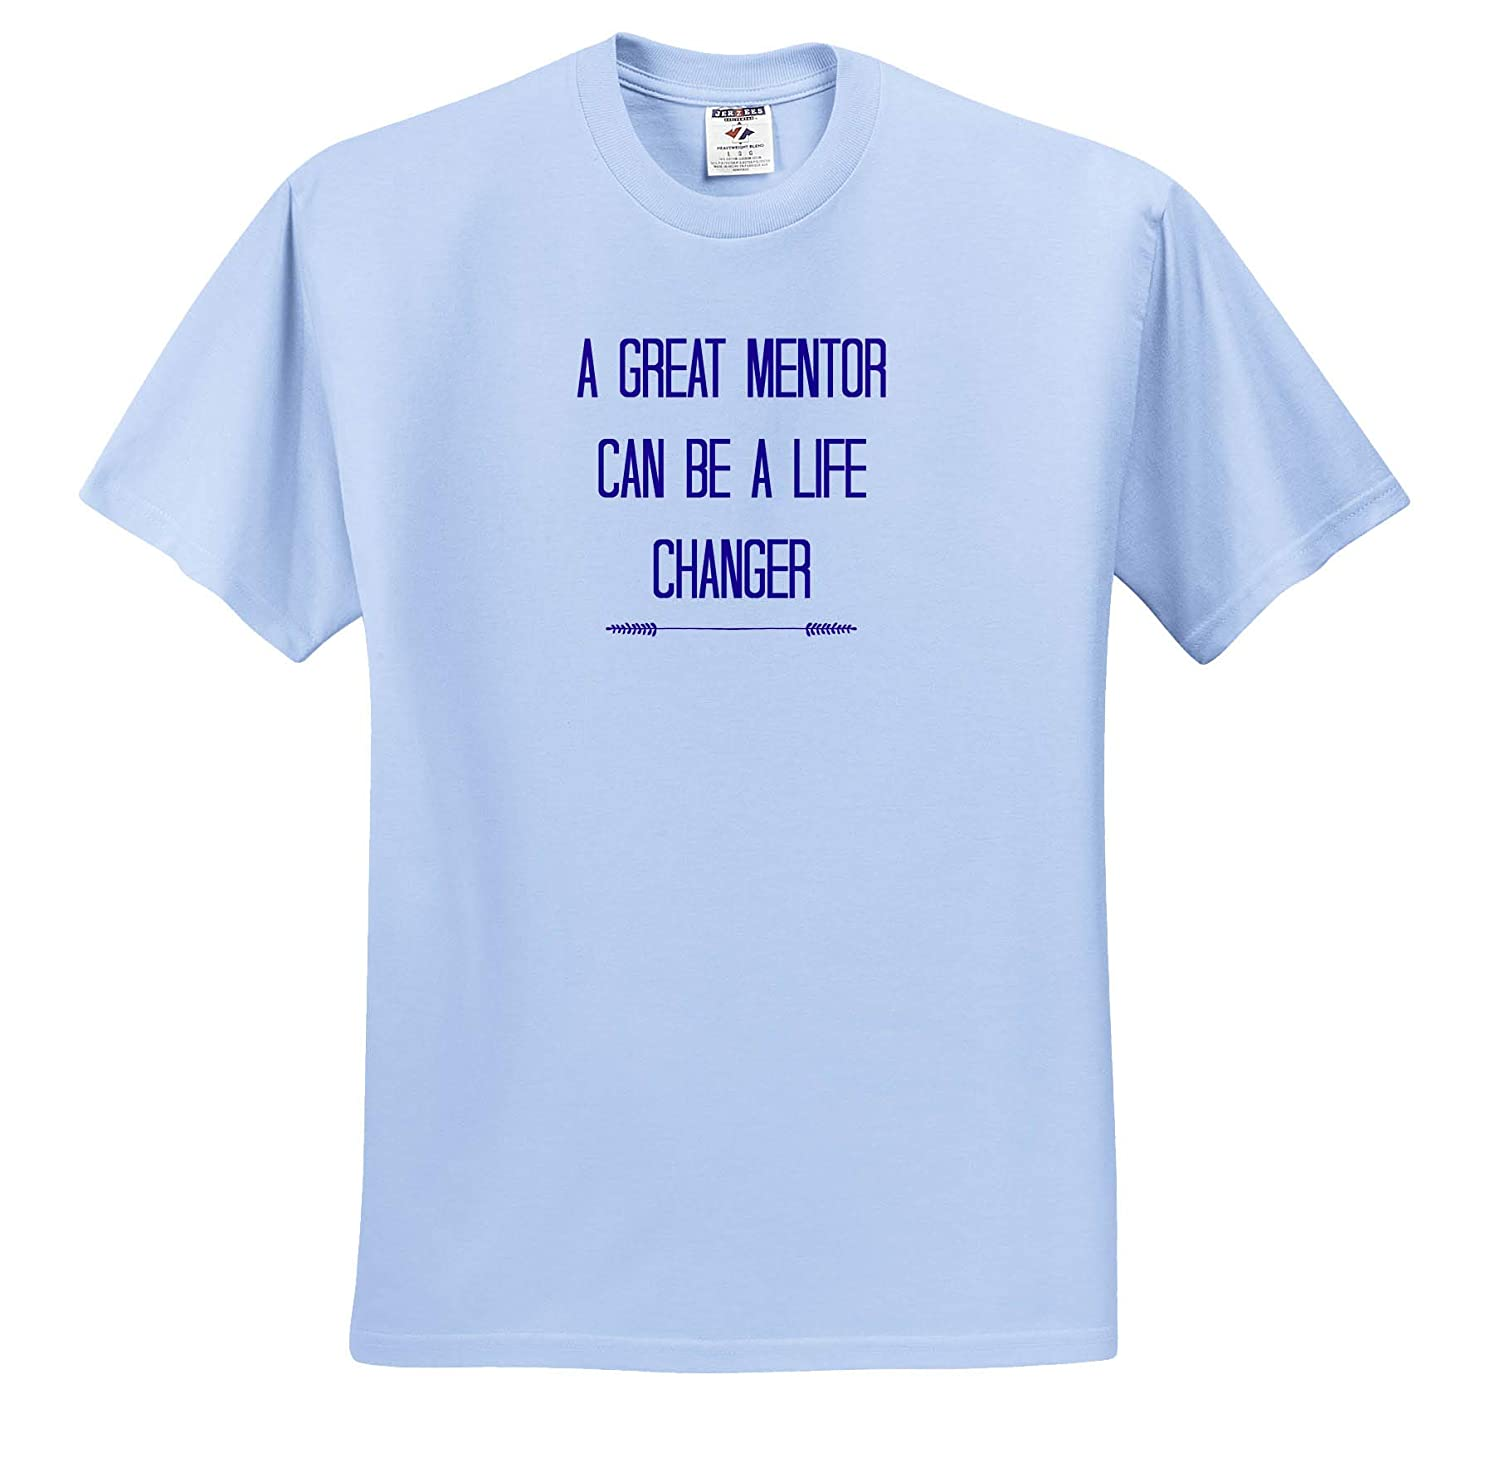 ts/_311858 Image of A Great Mentor Can Be A Life Changer 3dRose Carrie Merchant Quote Adult T-Shirt XL